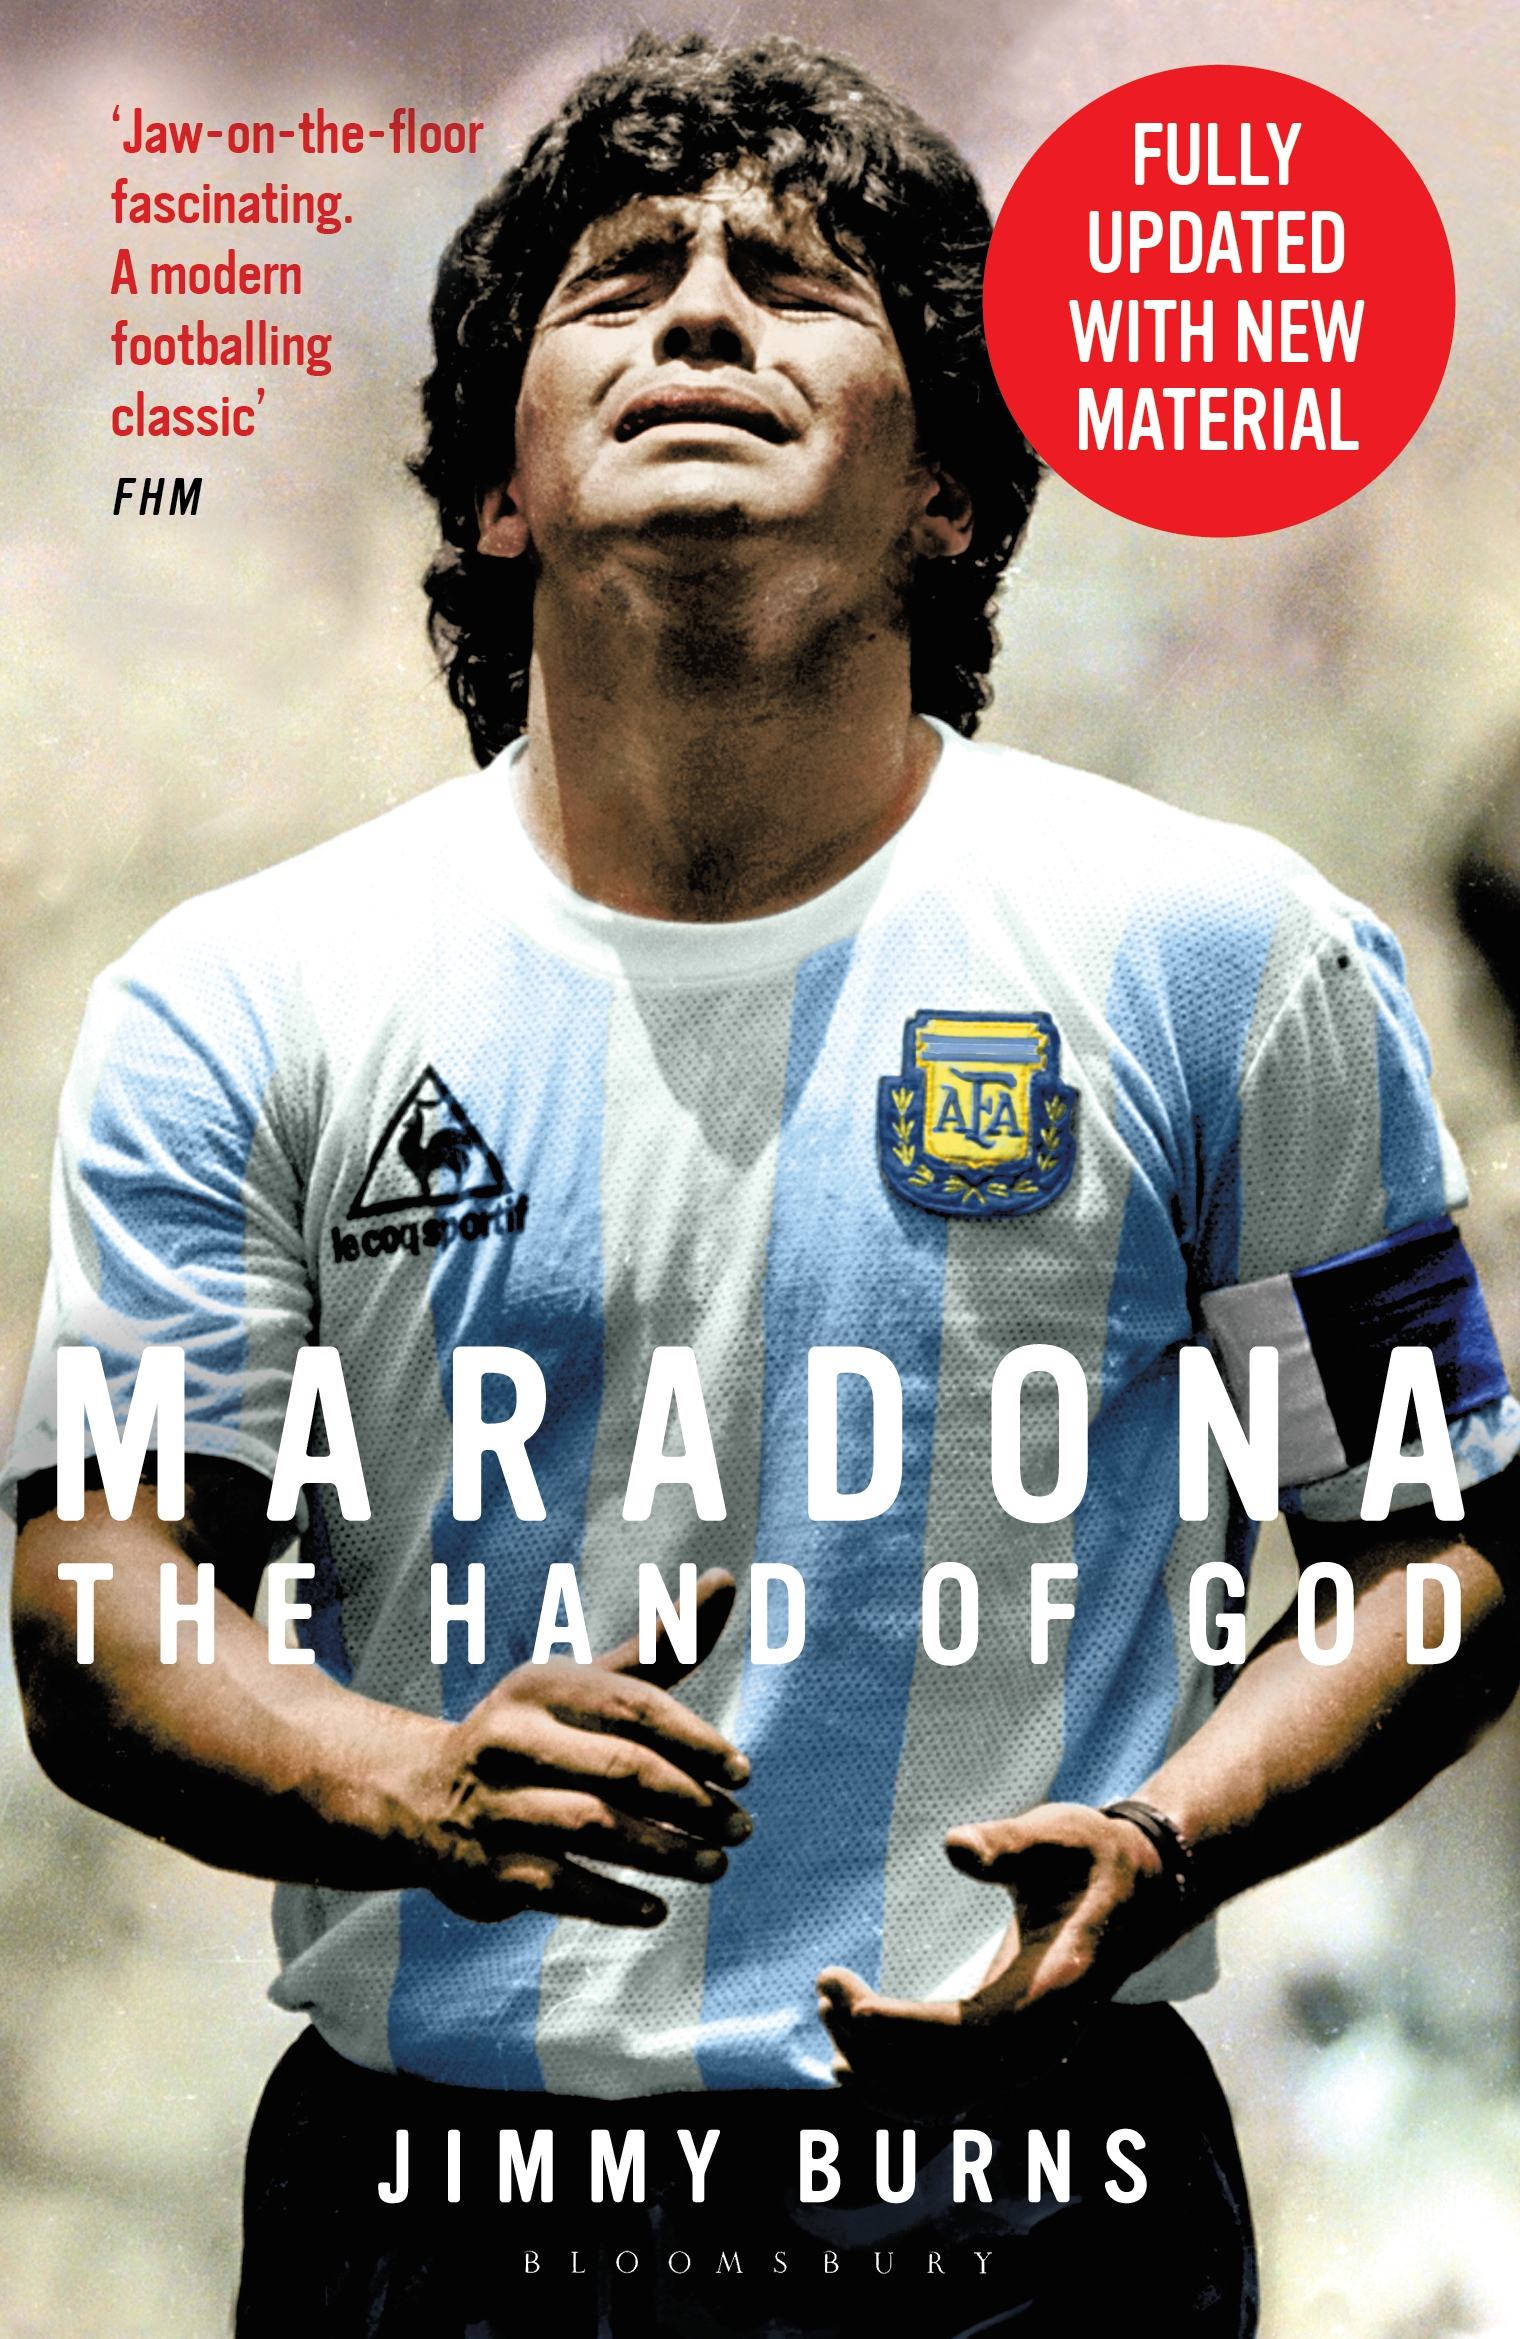 """Maradona: The Hand of God"" A conversation with JIMMY BURNS, OBE, on his biography of Diego Maradona"